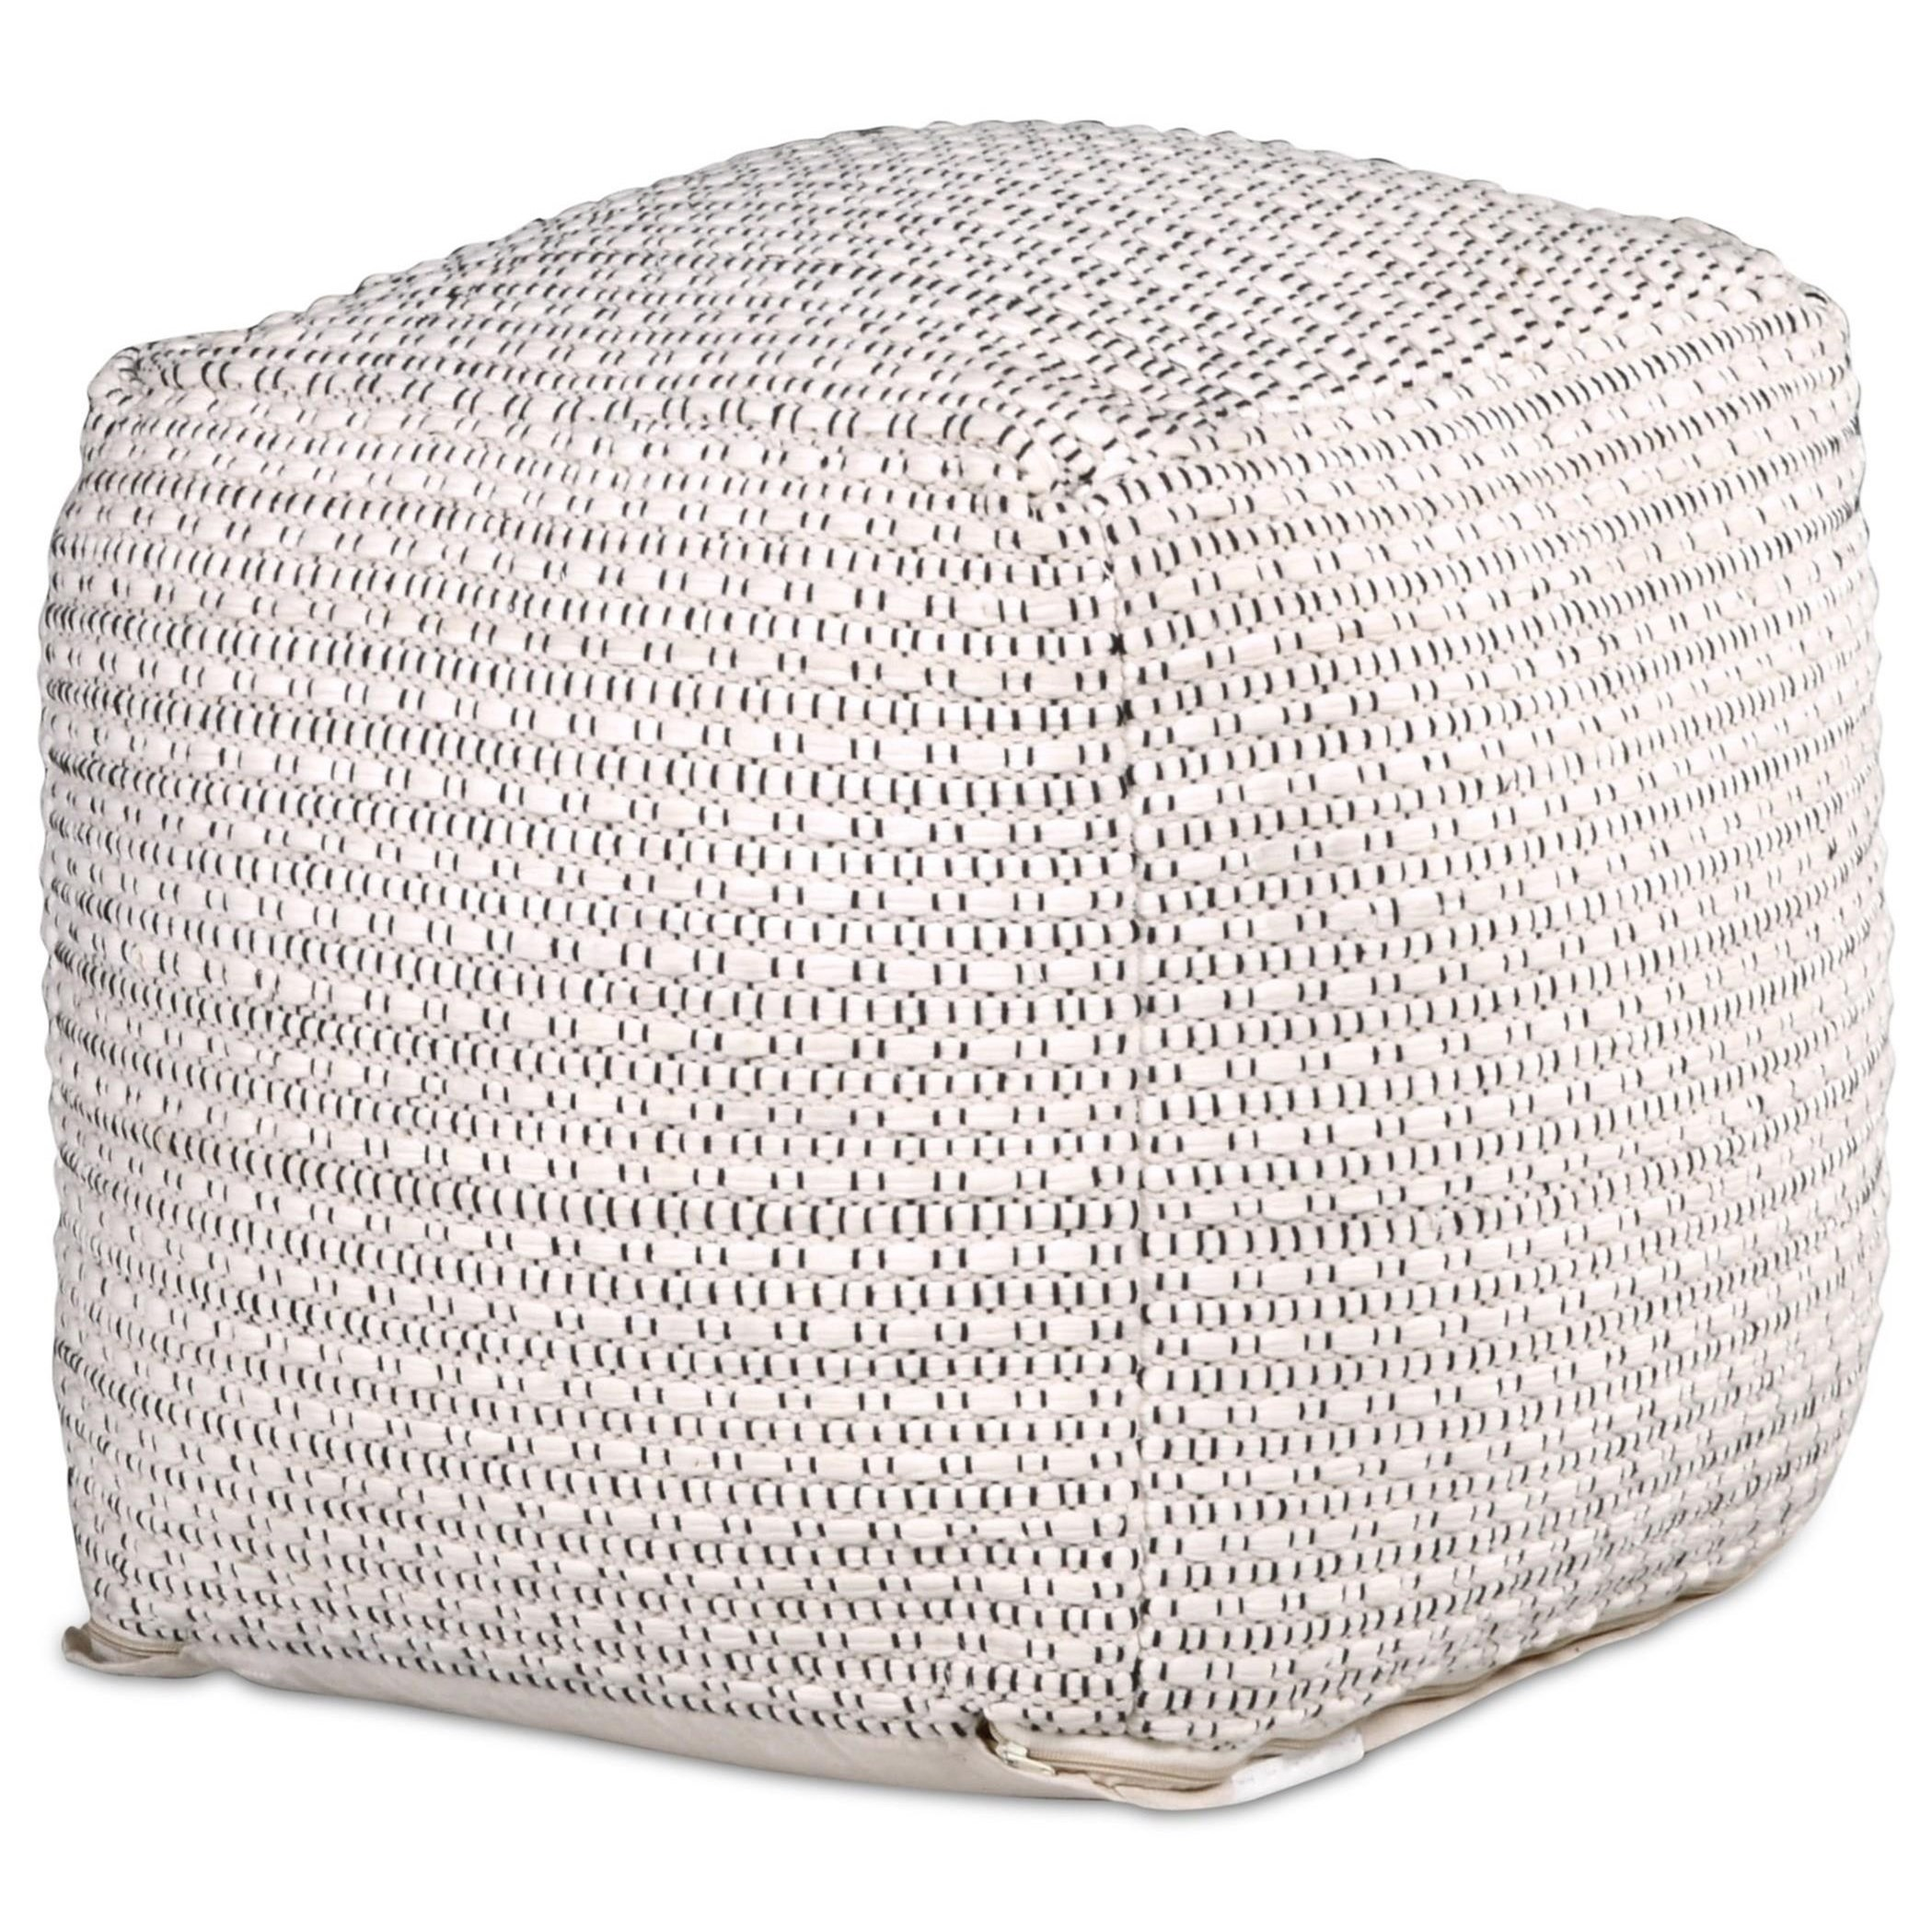 Hakim Handwoven Pouf by Steve Silver at Northeast Factory Direct